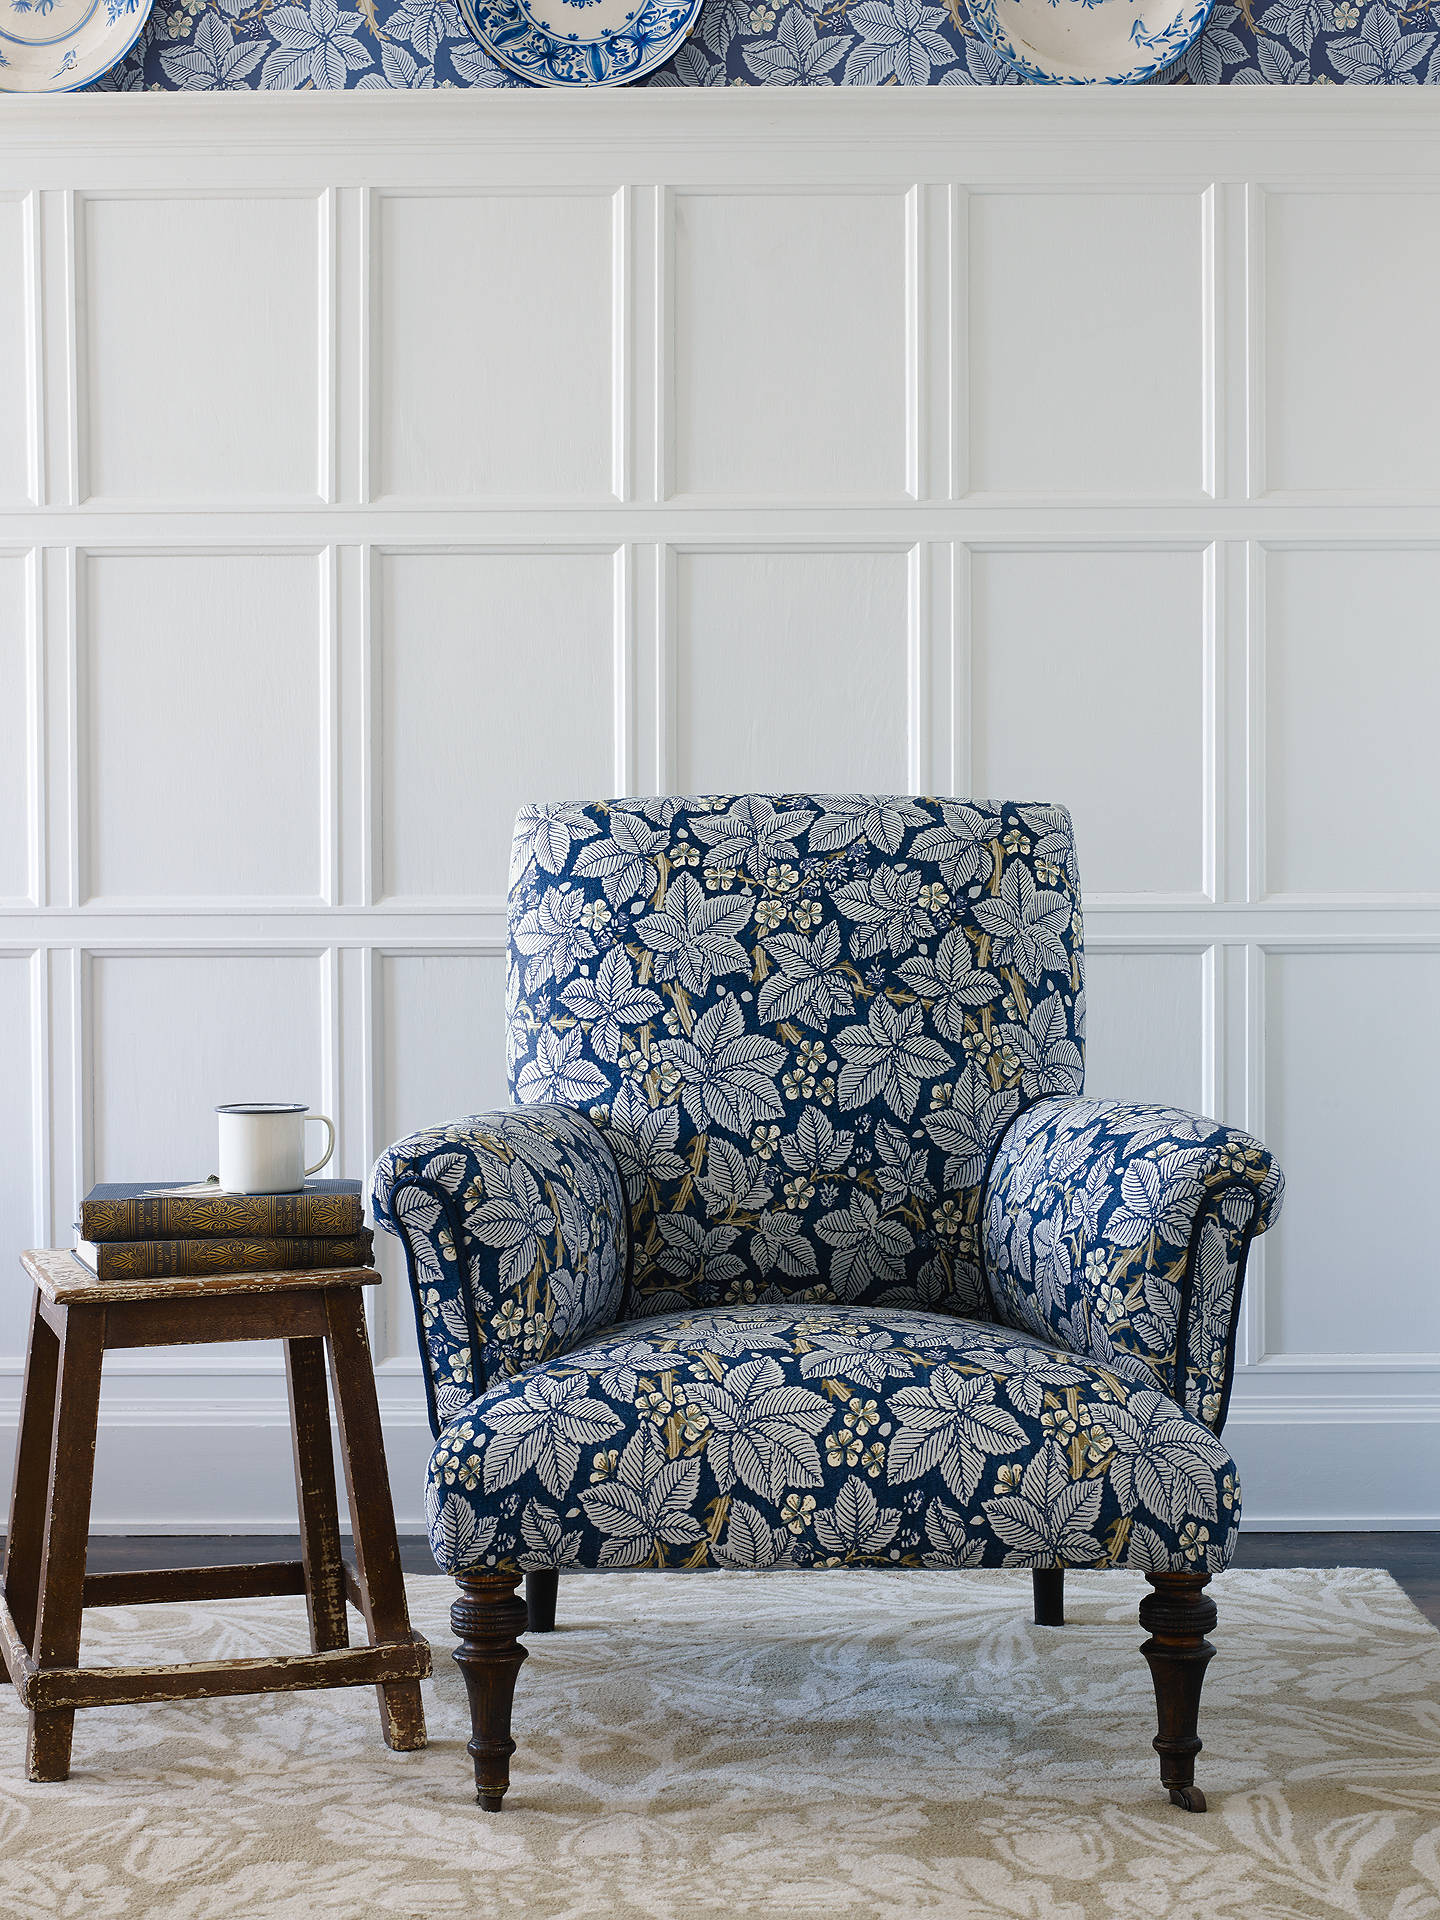 Buy Morris & Co. Bramble Furnishing Fabric, Indigo/Mineral Online at johnlewis.com